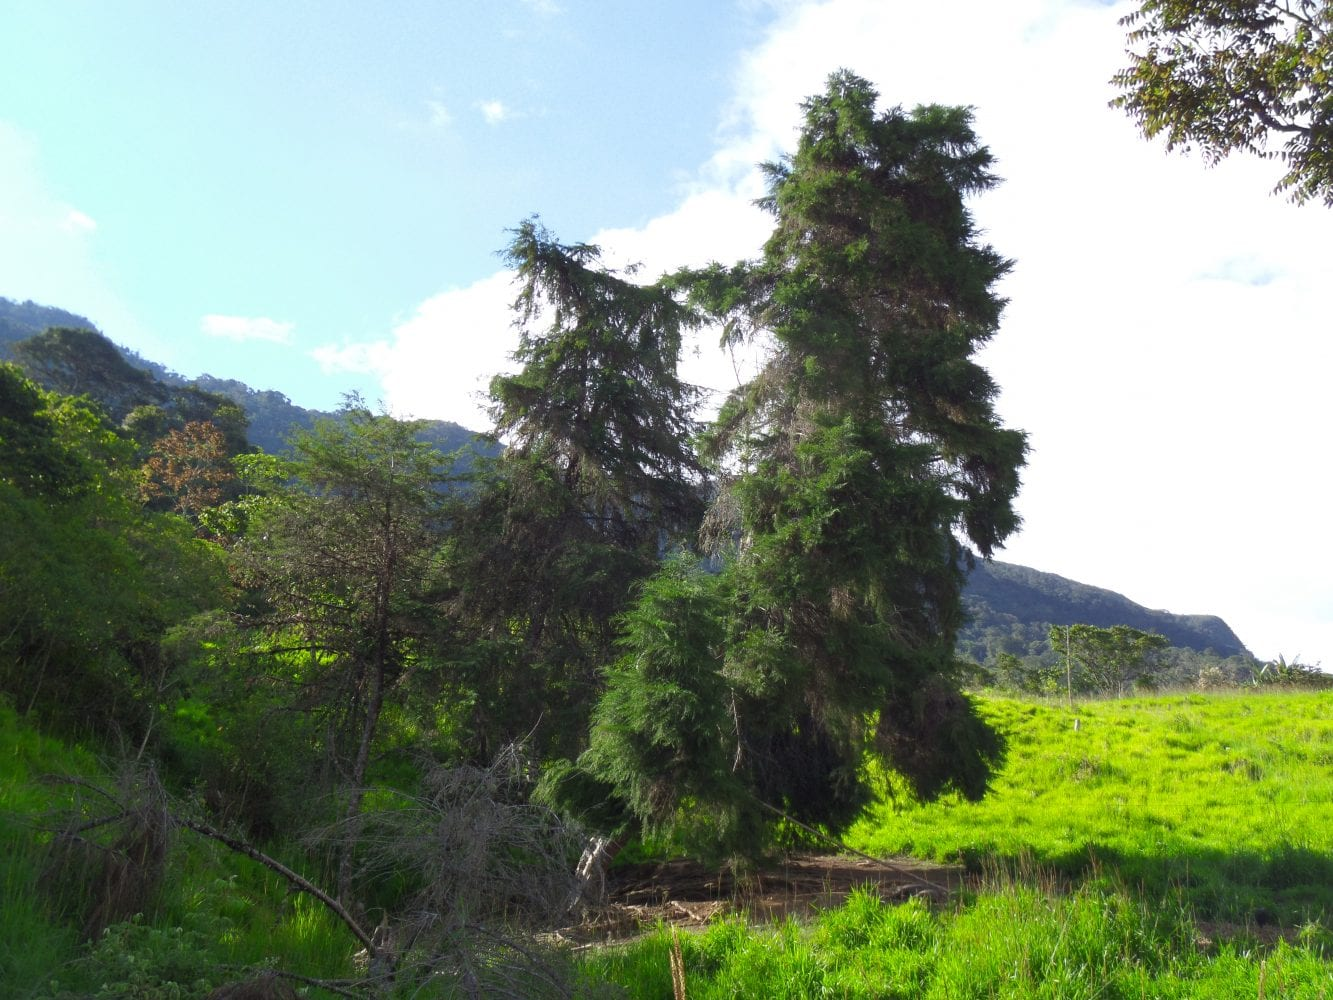 Cypress trees abound providing the farm with it's name